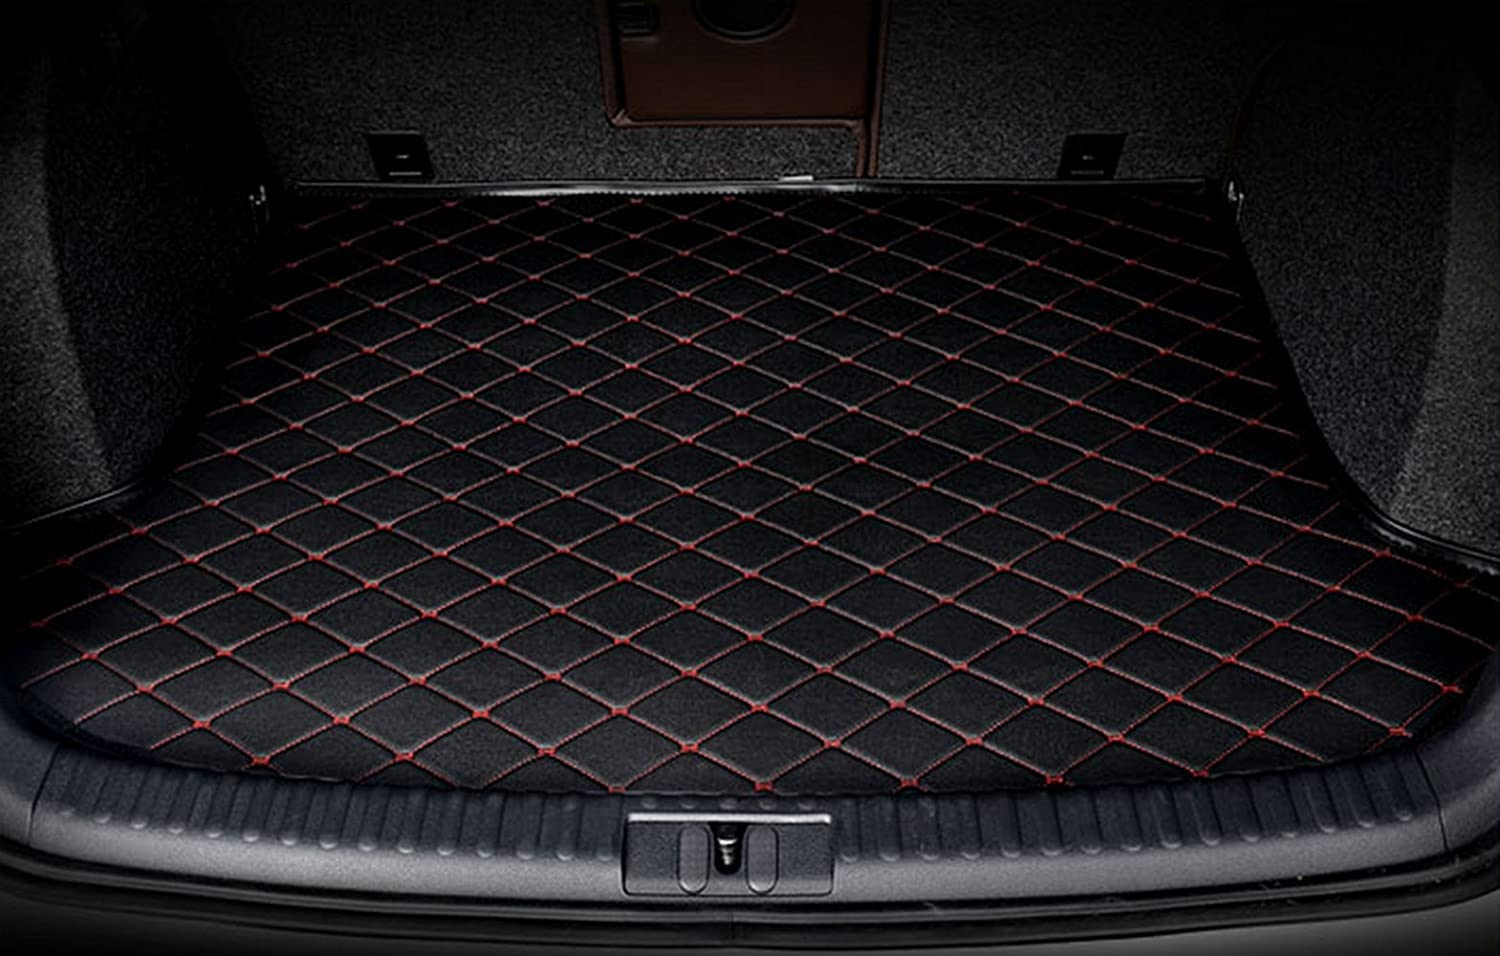 Worth-Mats All Weather Luxury XPE Leather Waterproof Custom Fits Rear Cargo Mats for Alfa Romeo Giulia Seden (Black with Red Stitching)